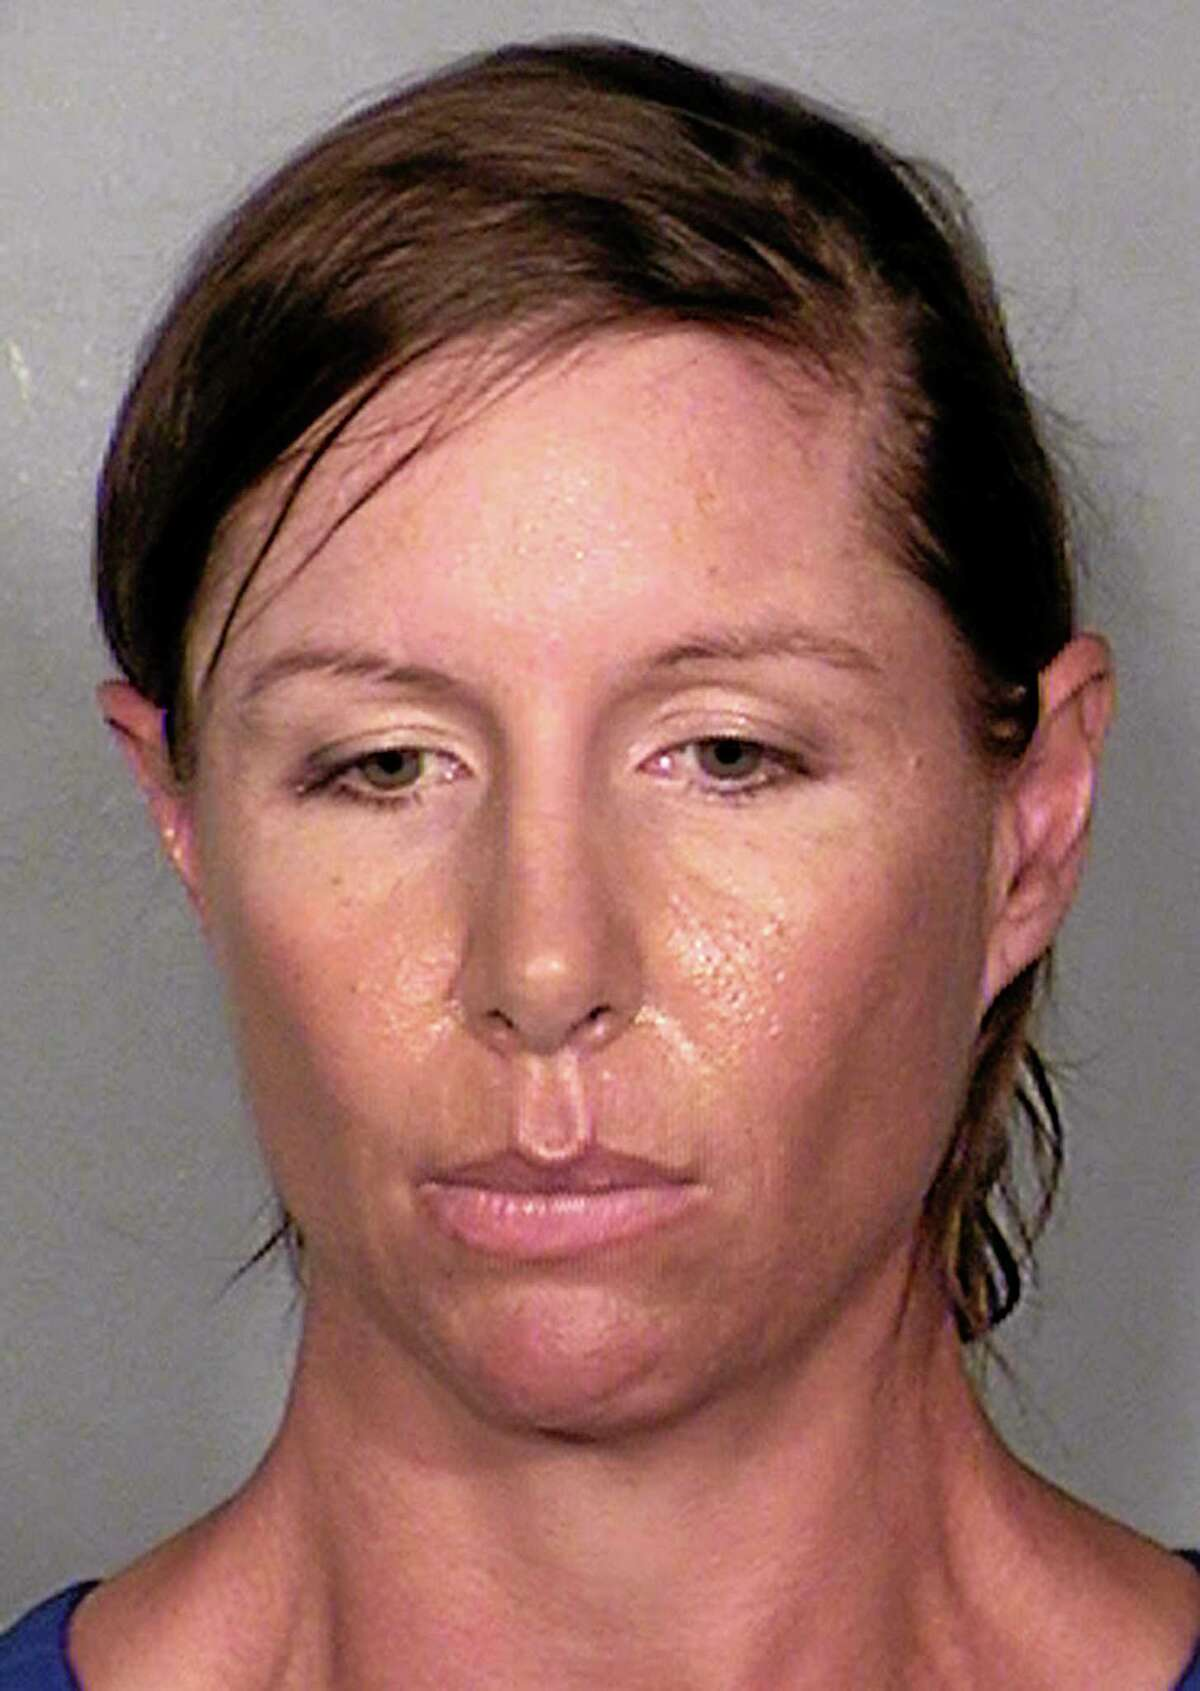 This image provided by the Las Vegas Metropolitan Police Department shows Alison Ernst, who was arrested April 10, 2014 in connection with an incident involving throwing a shoe at Former Secretary of State and Former First Lady Hillary Clinton. Alison was arrested for Disorderly Conduct and released. (AP Photo/Las Vegas Metropolitan Police Department)